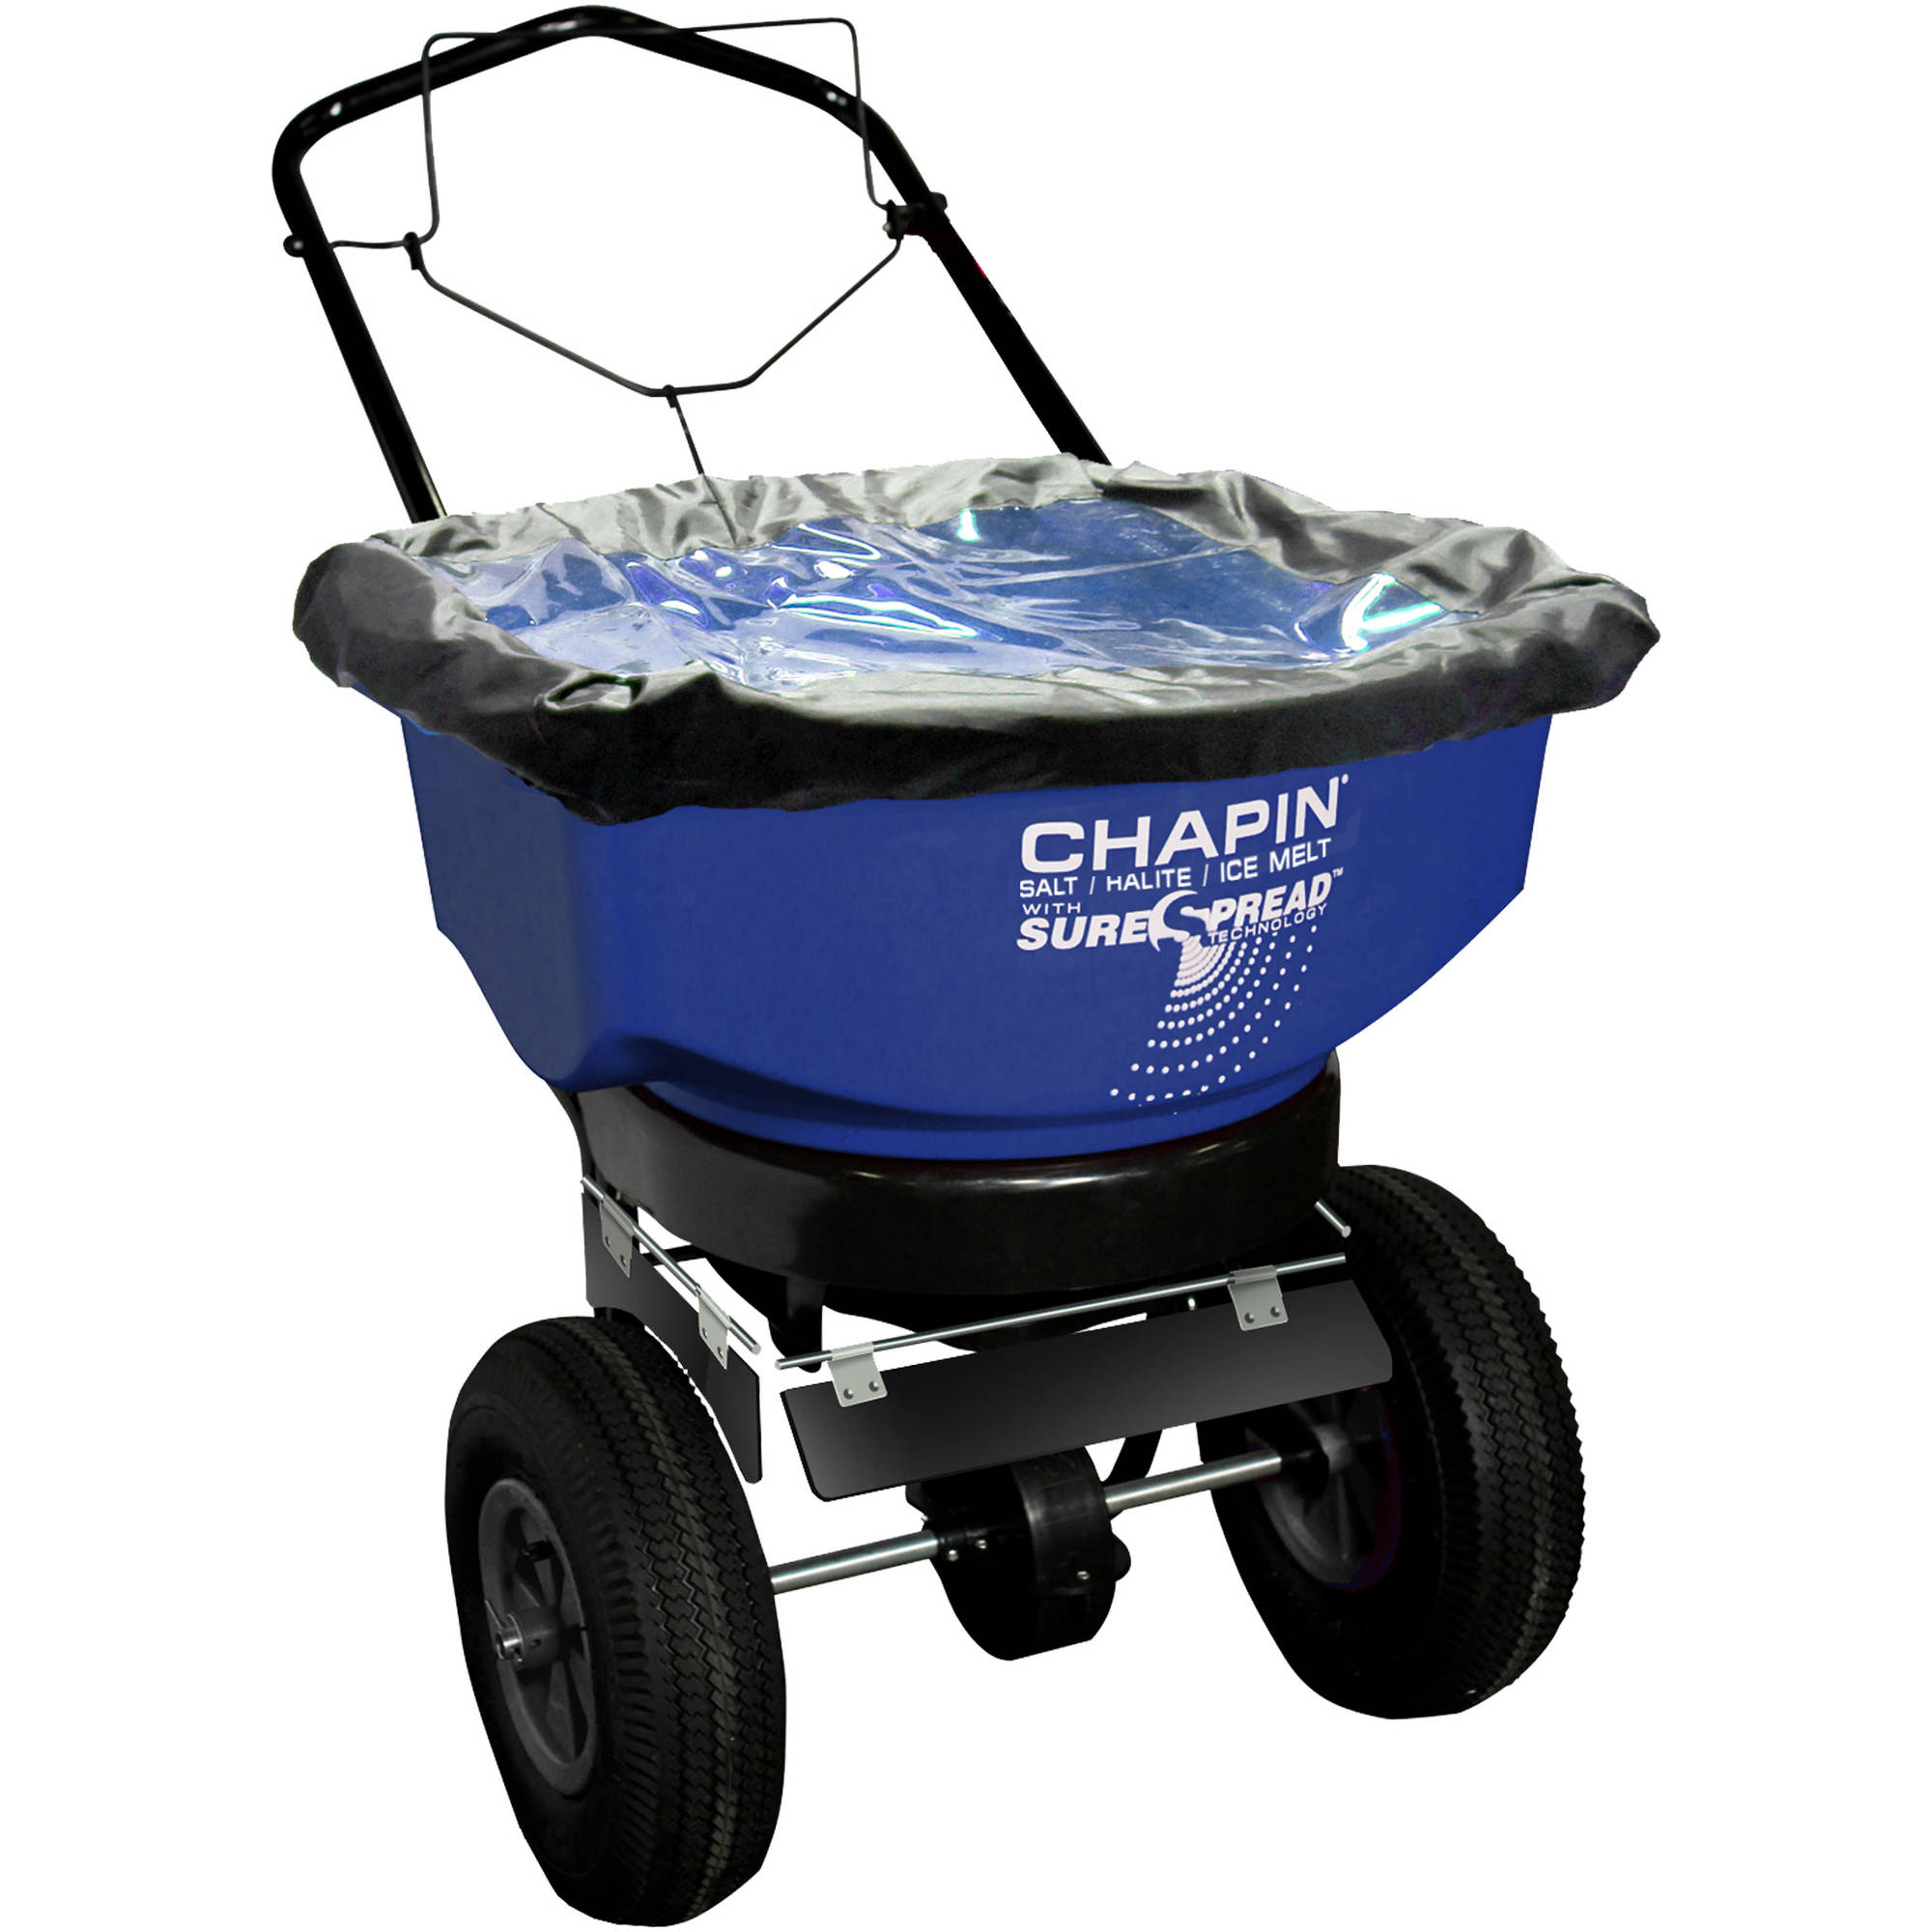 Chapin 80088A 80-Pound Residential Salt Spreader by Chapin